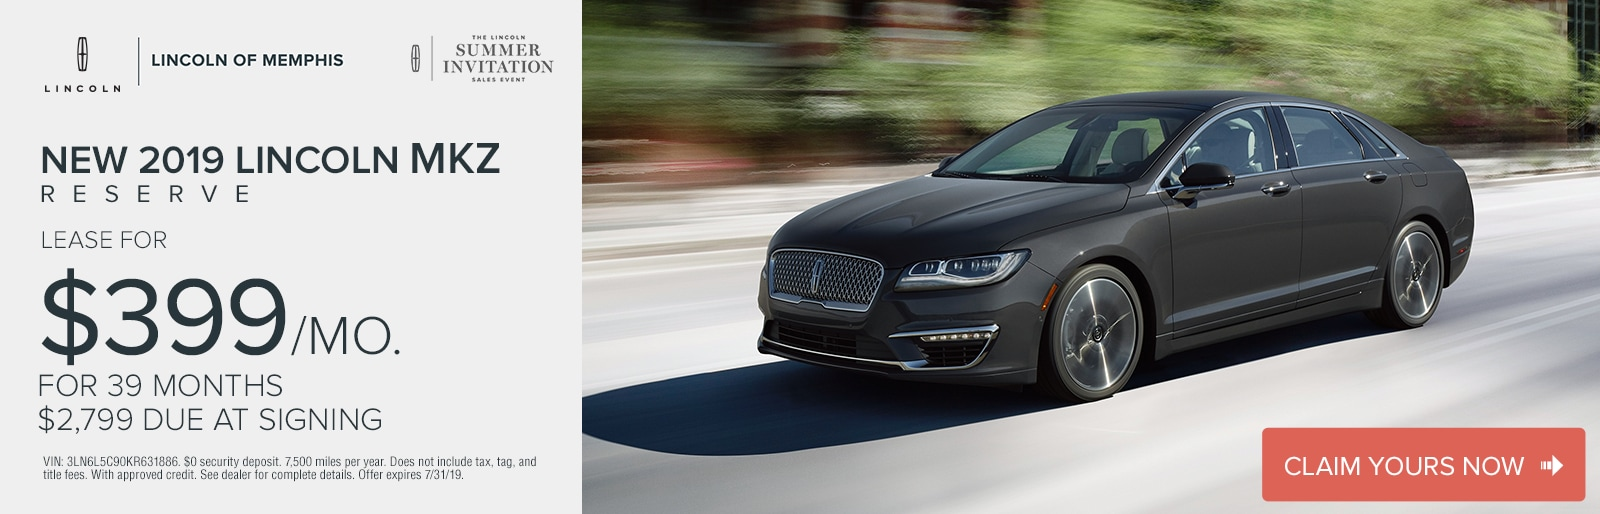 Car Dealerships In Memphis >> New Used Lincoln Vehicles Lincoln Dealer Serving Memphis Tn